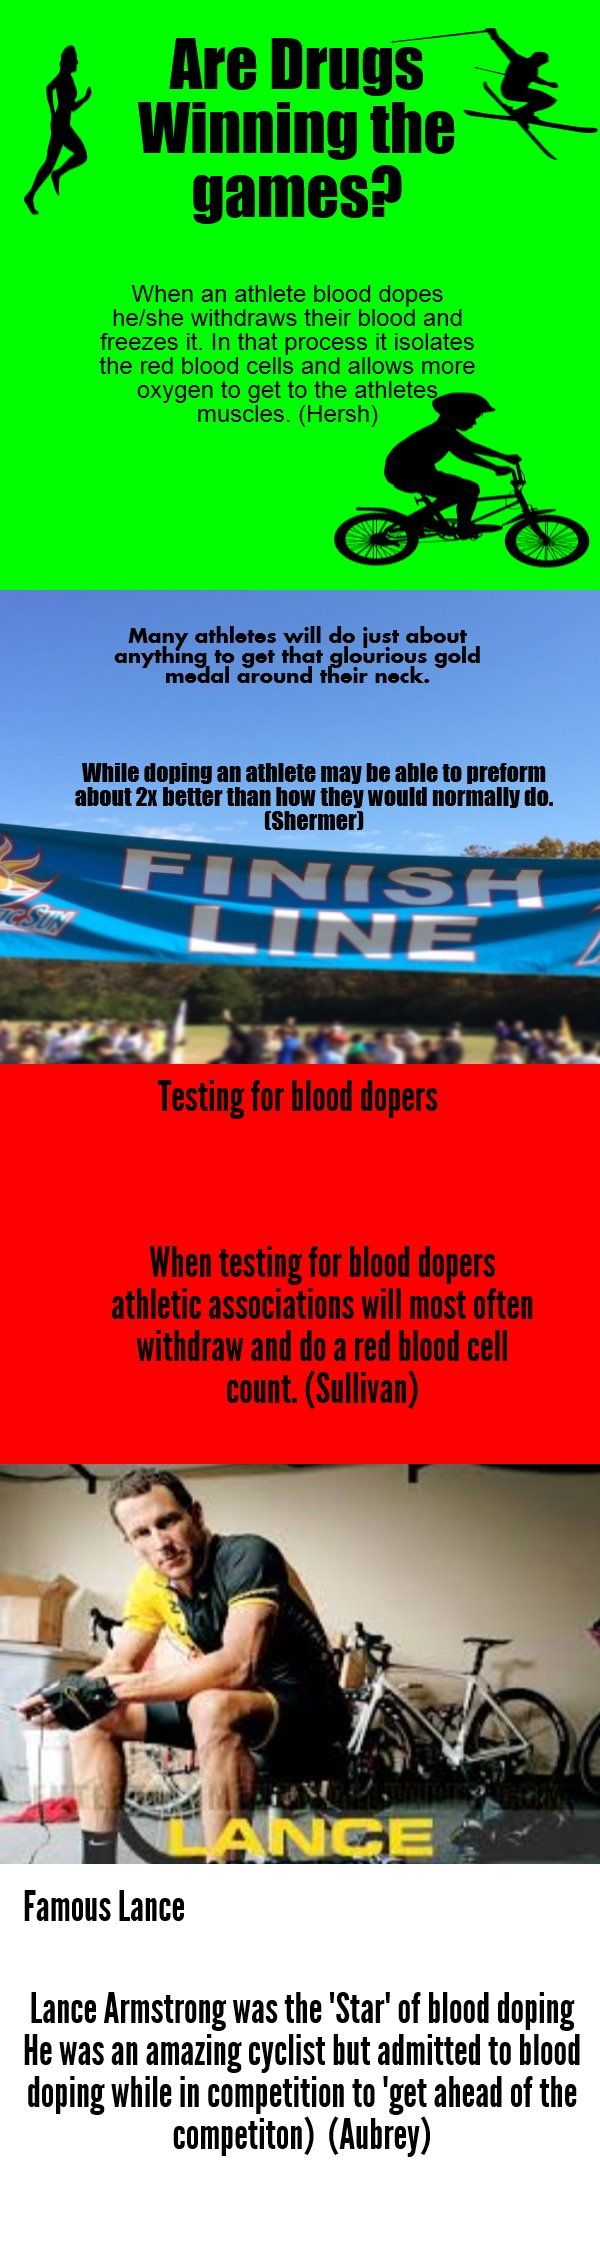 Blood doping: infographic Copy | Piktochart Infographic Editor